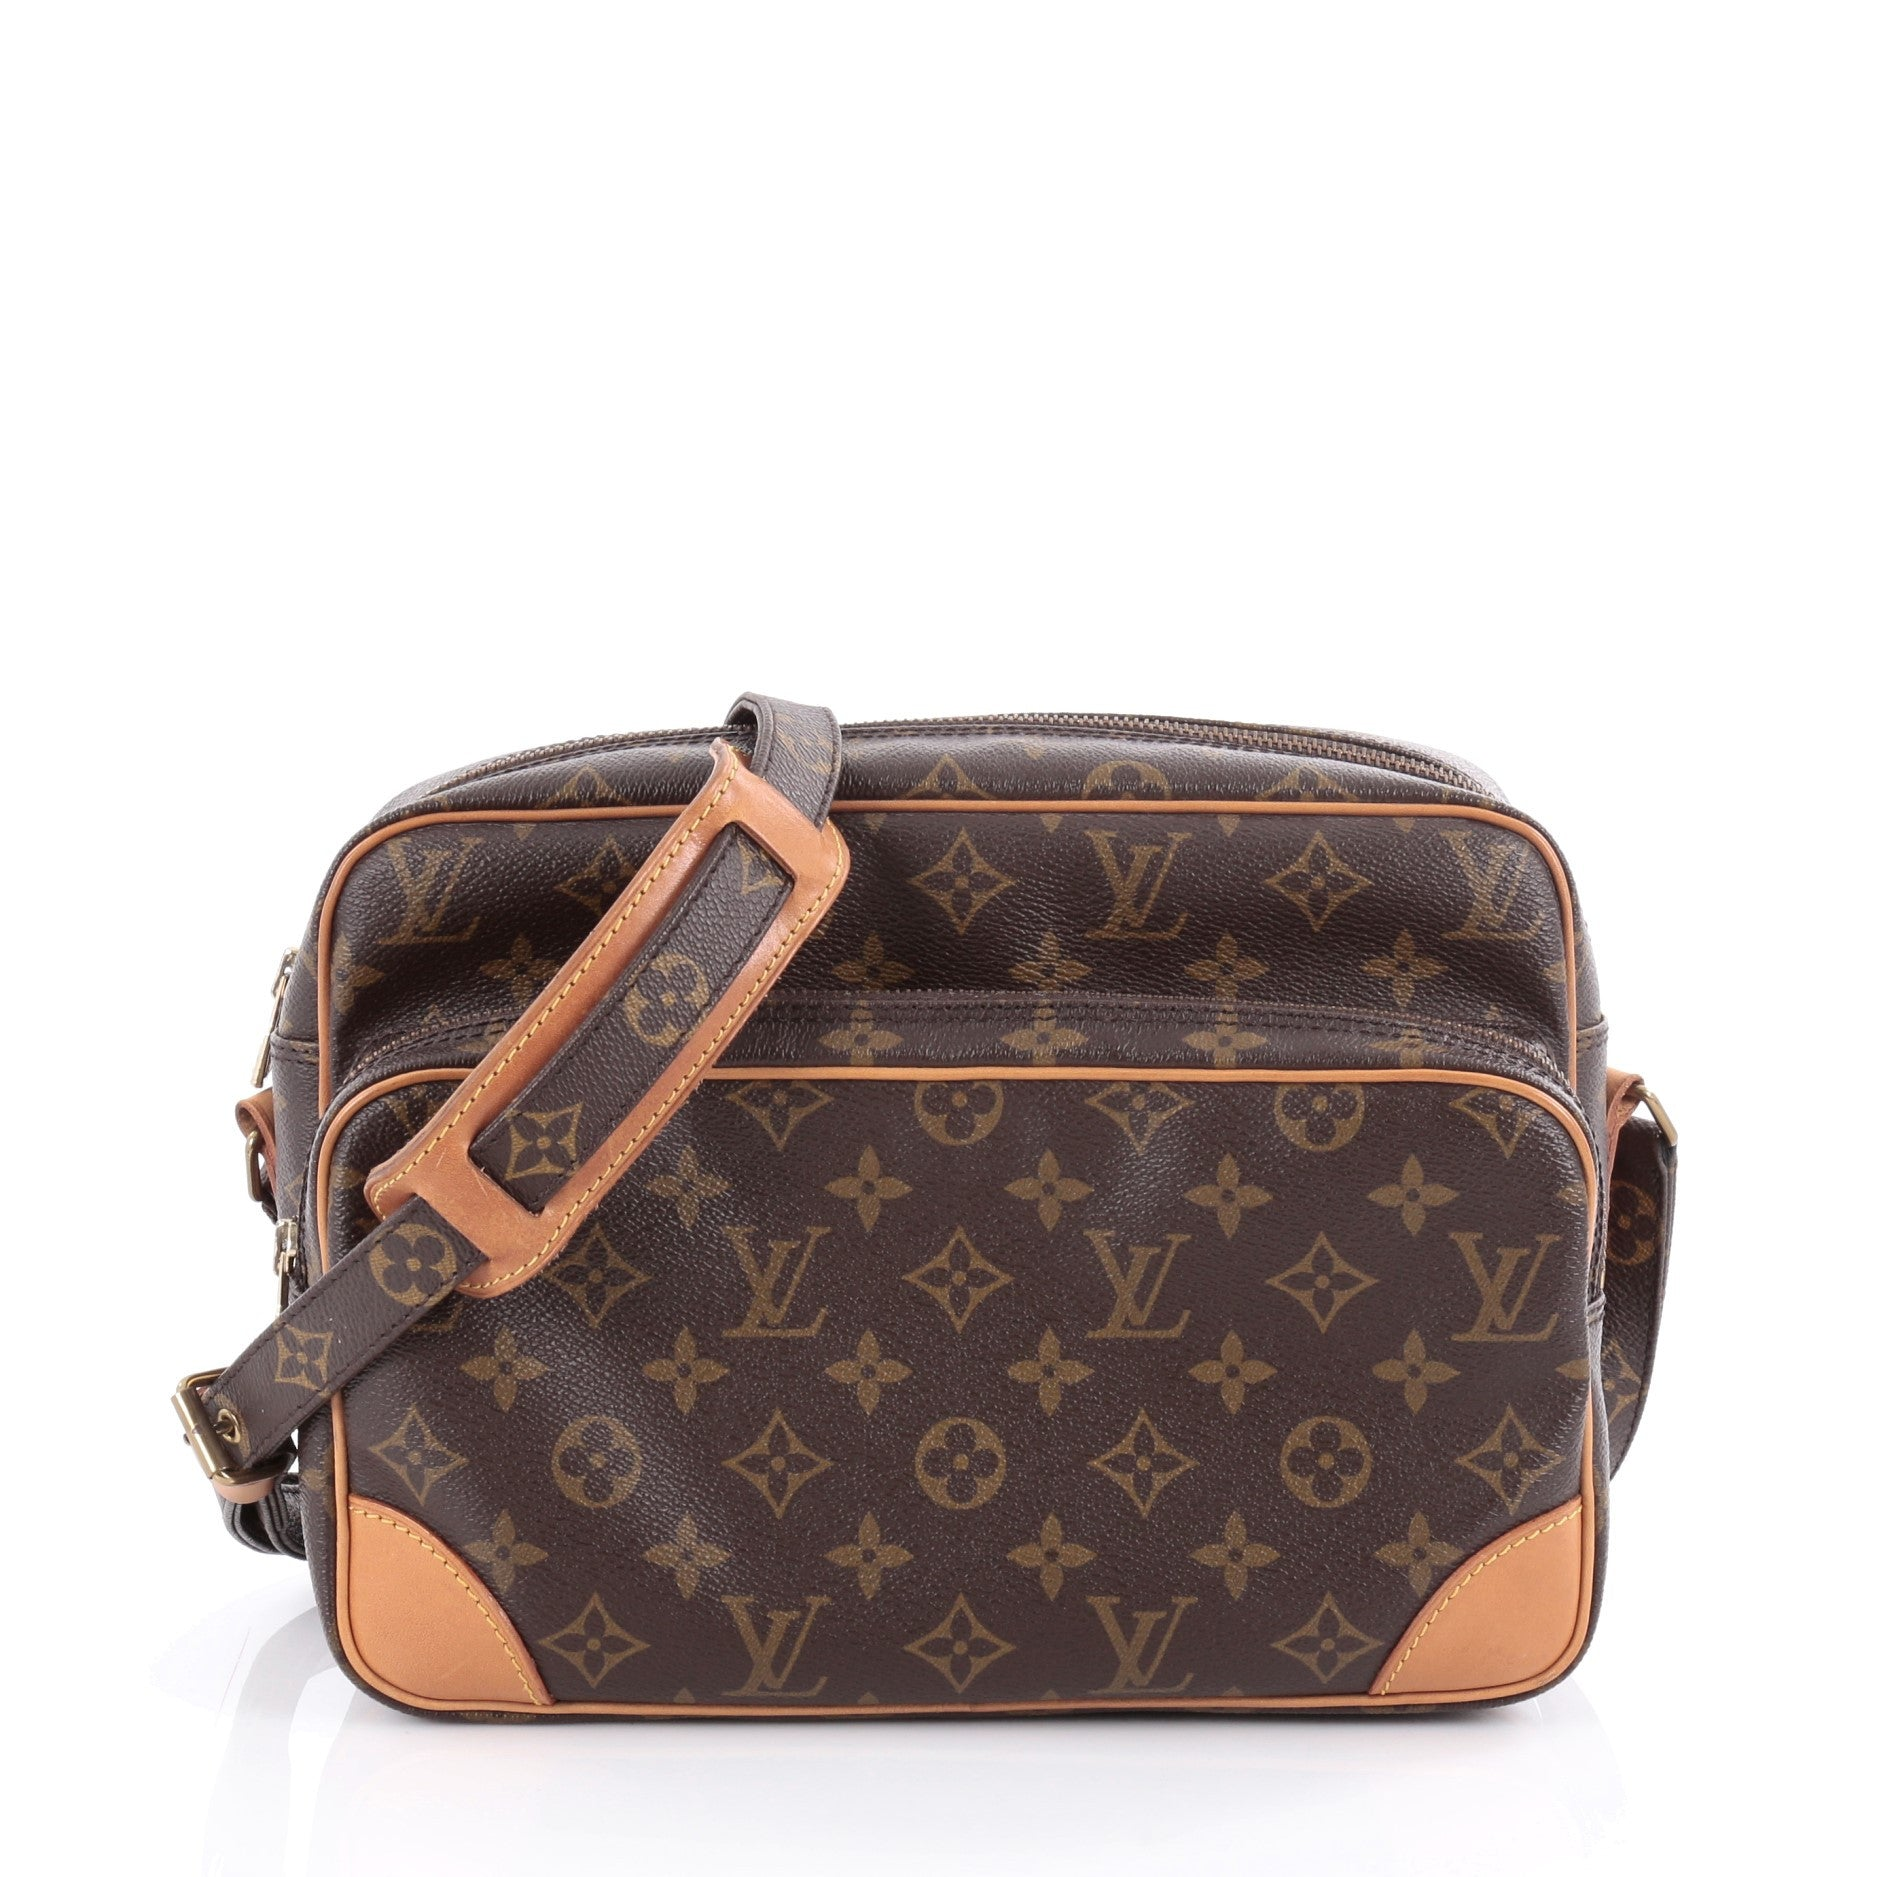 64f639c39e2a 20704-01_Louis_Vuitton_Nil_Handbag_Monogram_Canvas_2D_0003.jpg?v=1499763312